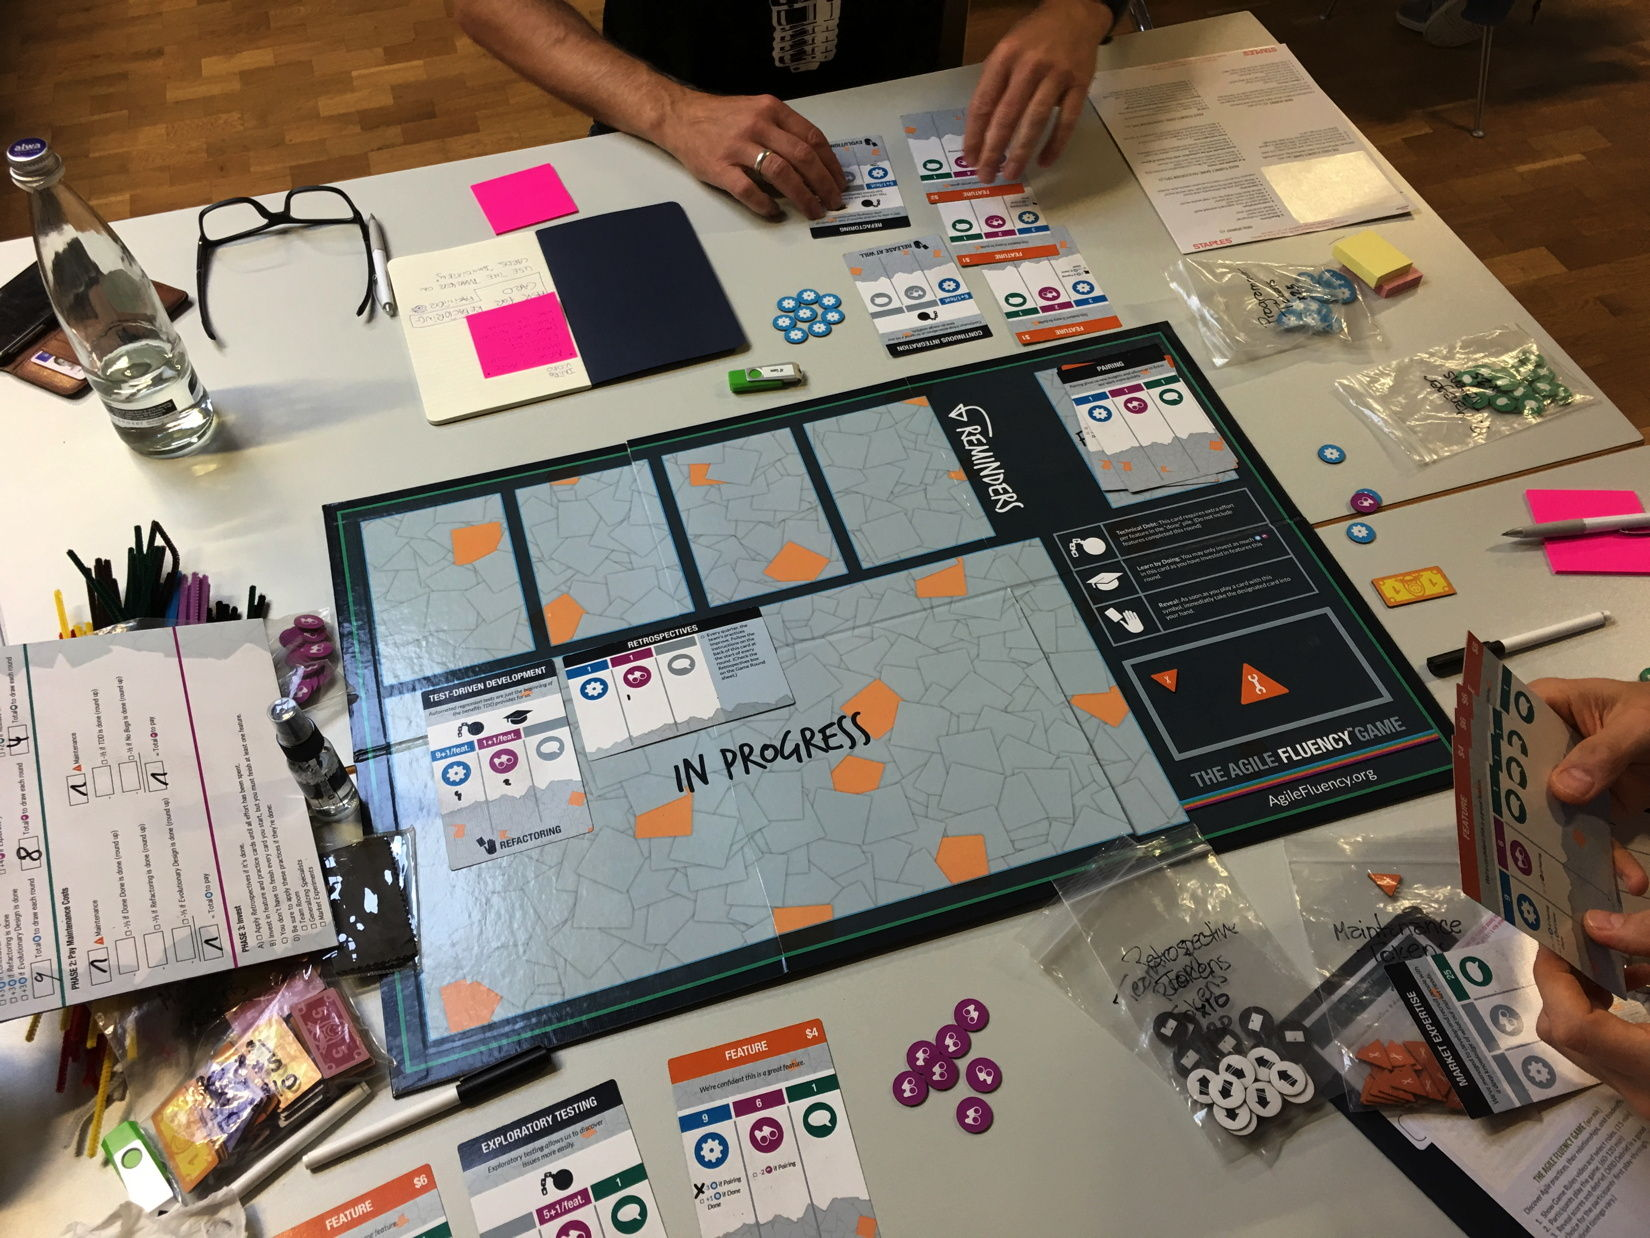 Hands-on Agile Meetup #8: Agile Fluency Game ™ — Berlin Product People